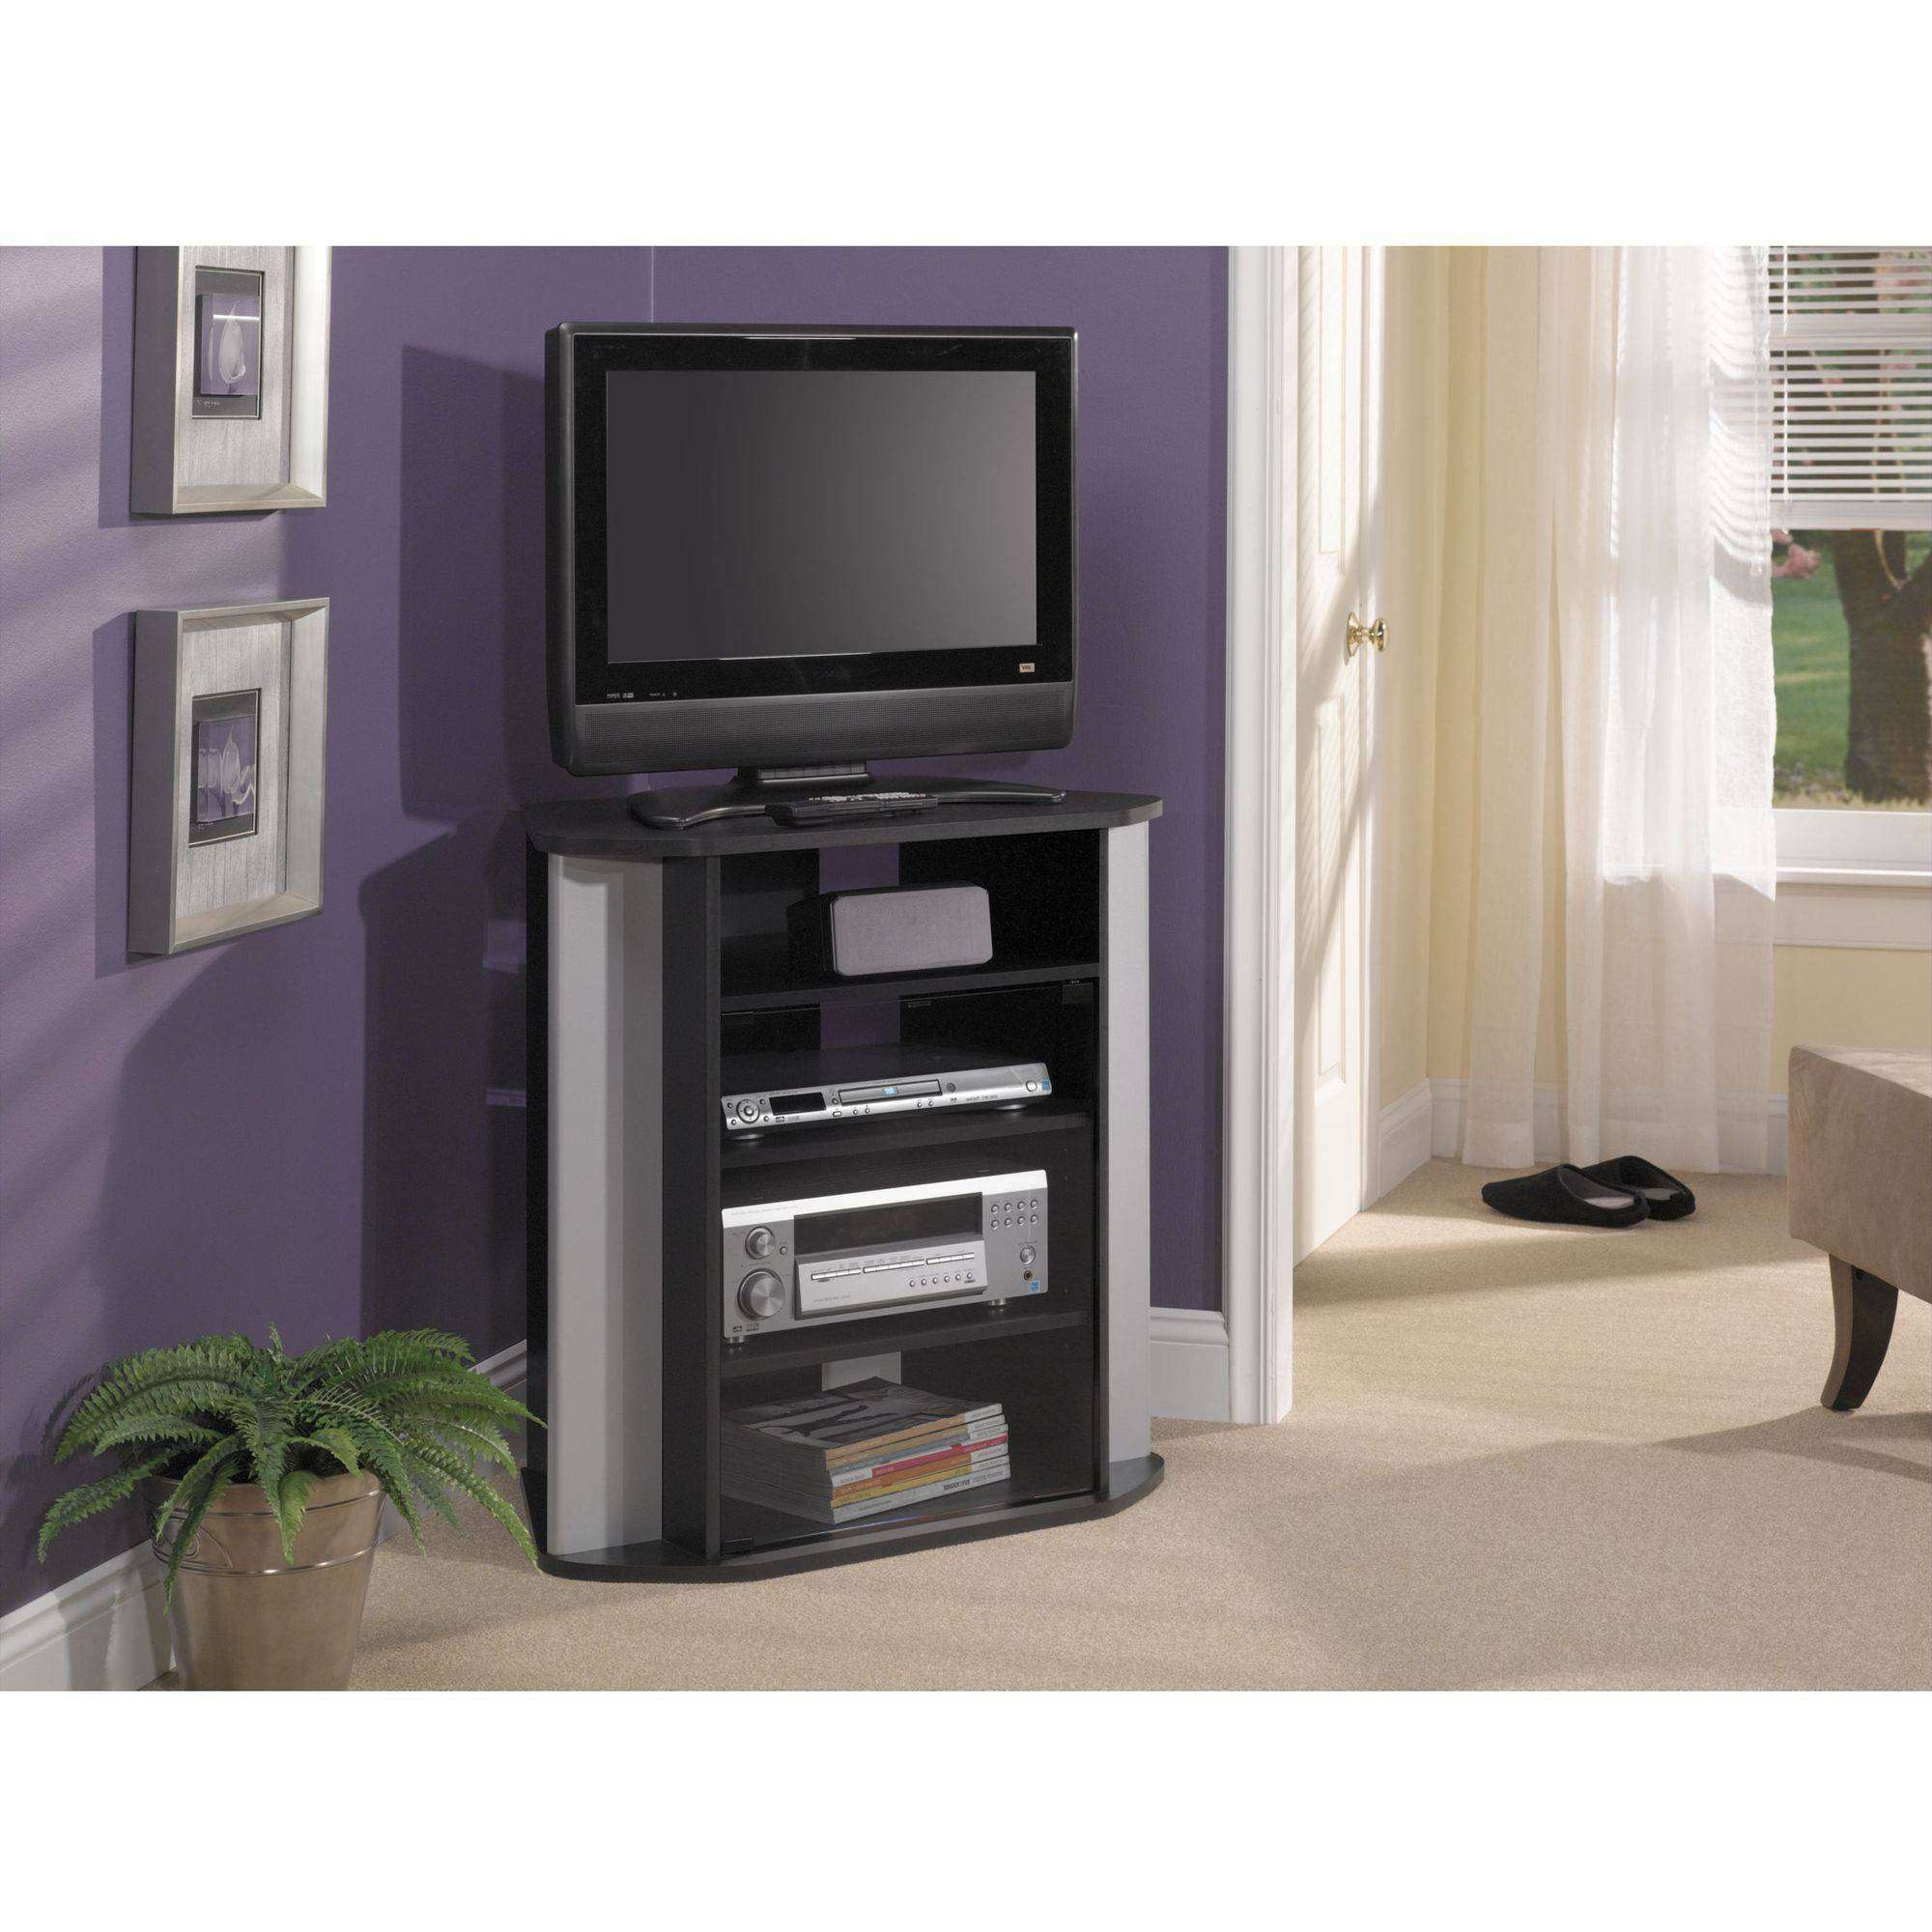 Bush Visions Black Tall Corner Tv Stand, For Tvs Up To 37 In Contemporary Corner Tv Stands (View 2 of 15)